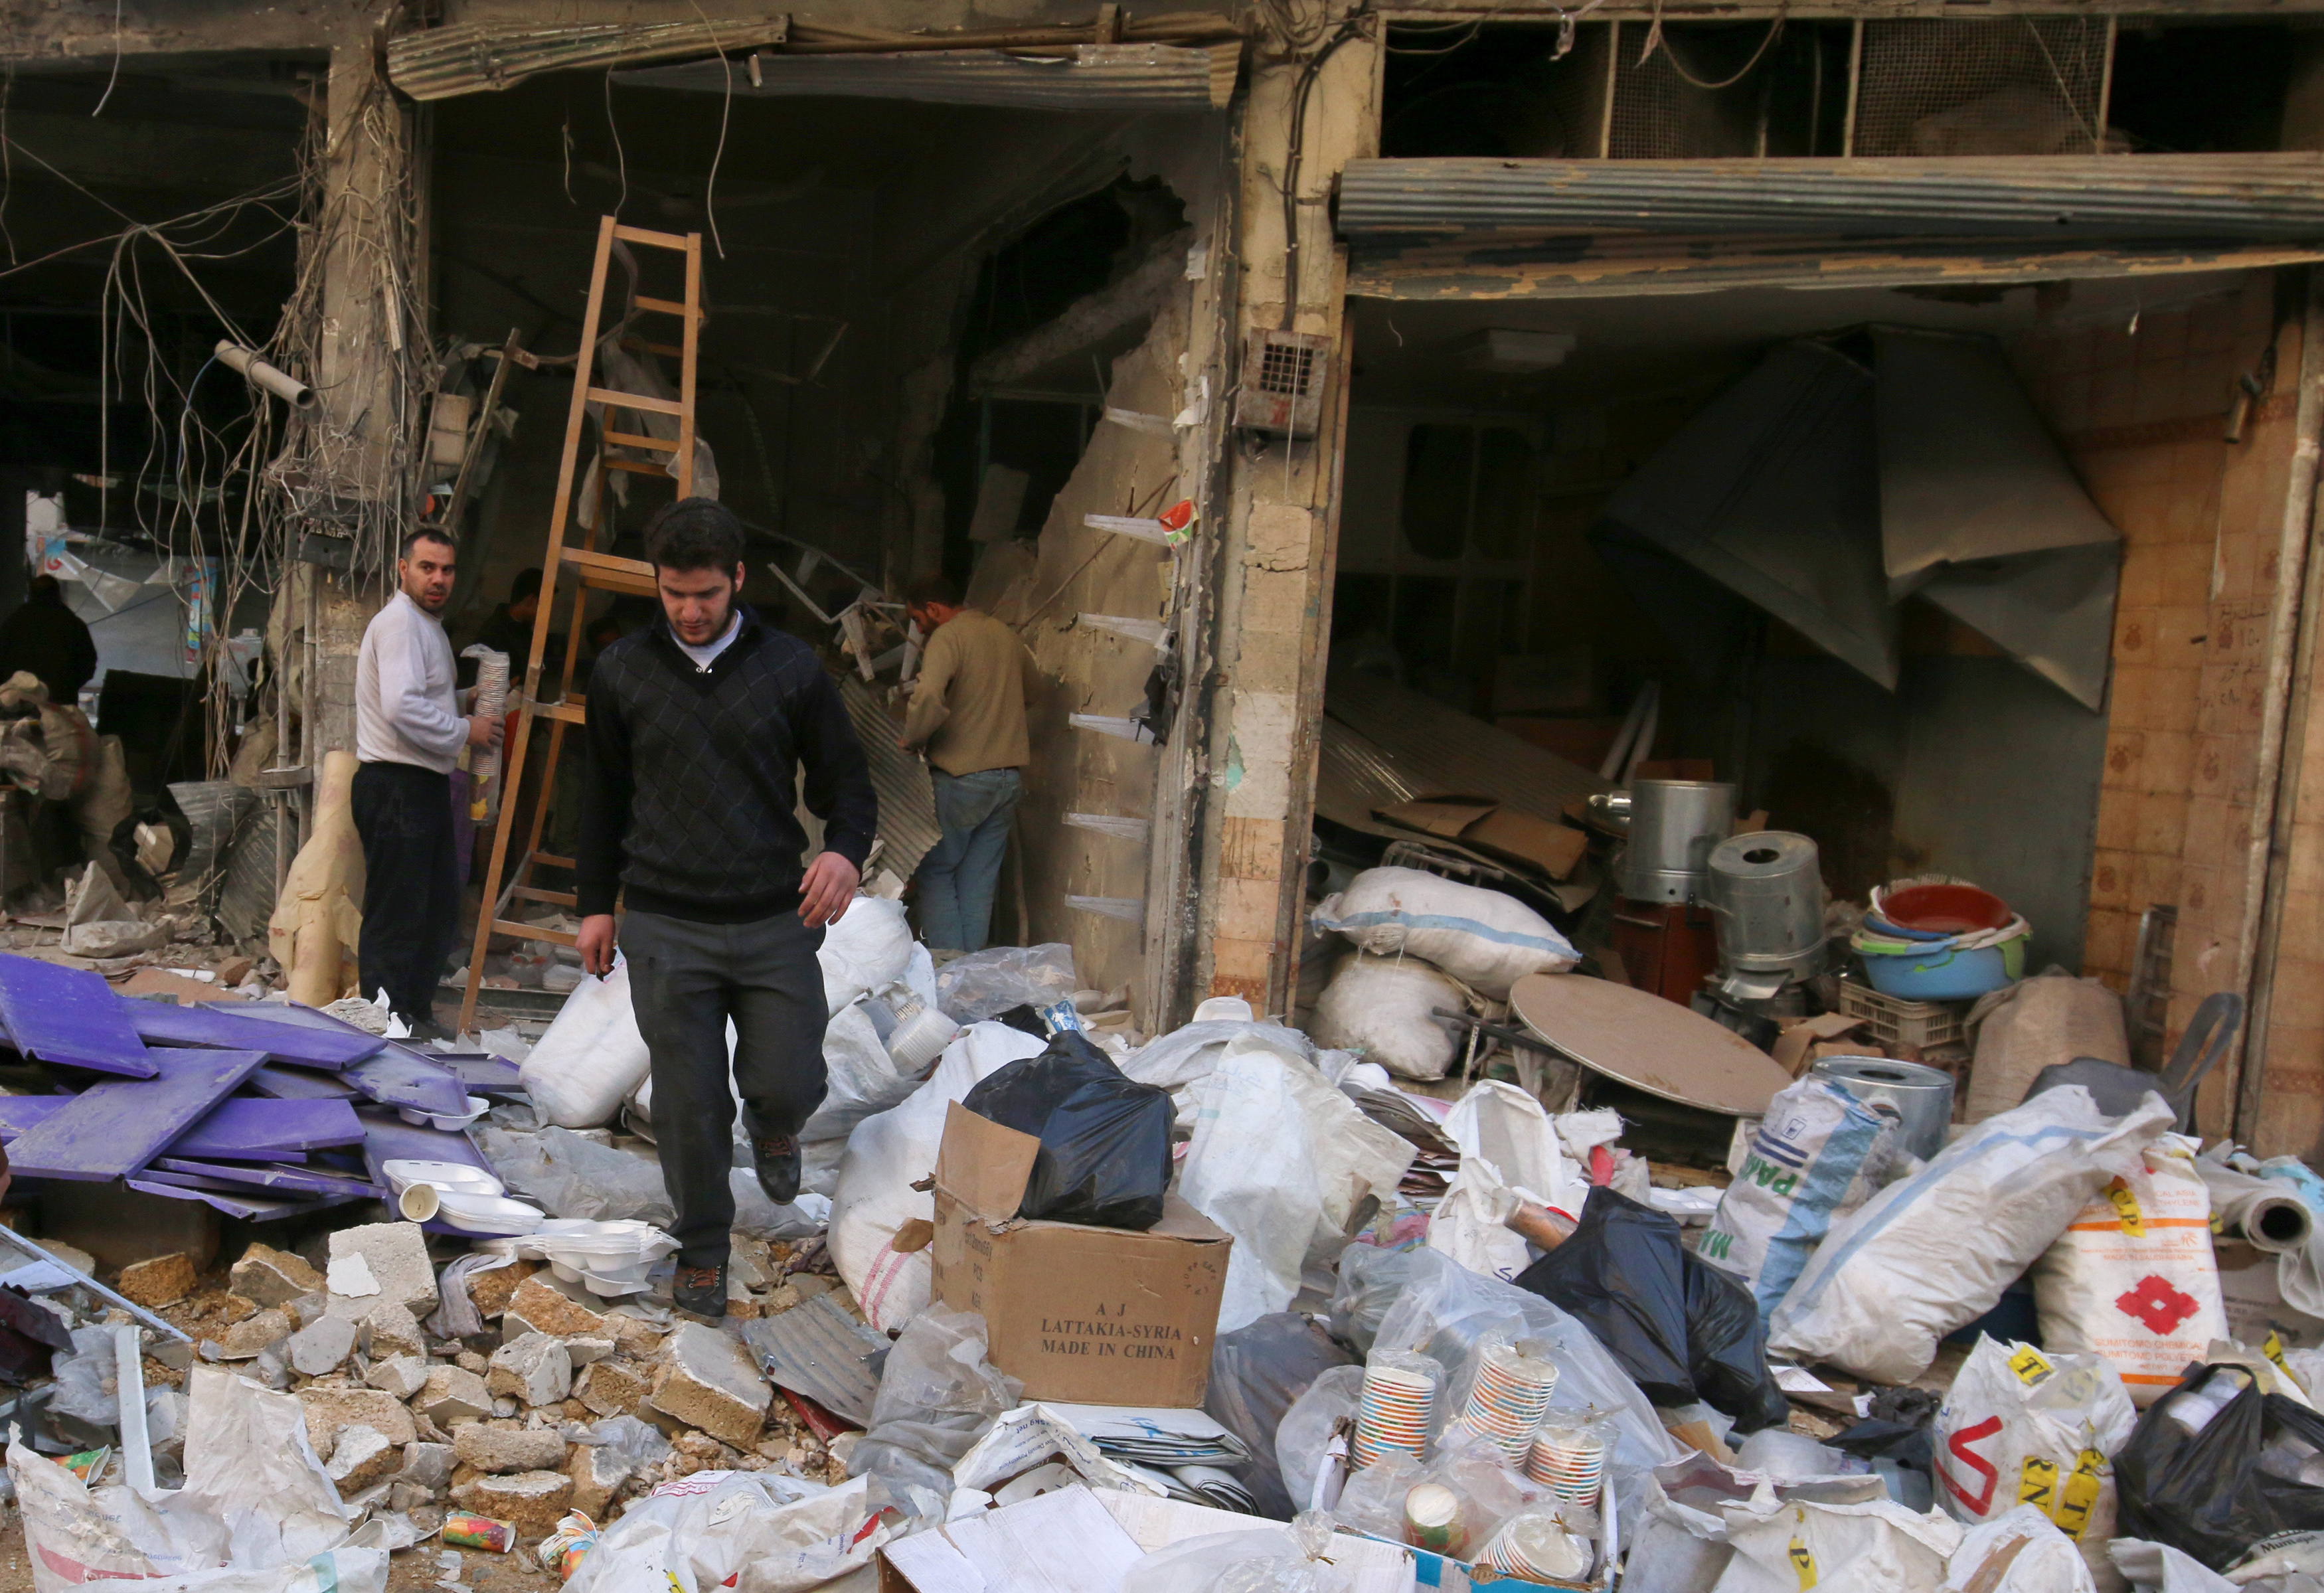 Men salvage belongings from their damaged shops at a site hit on Nov. 16 by airstrikes in the rebel held al-Shaar neighborhood of Aleppo. Photo by Abdalrhman Ismail/Reuters